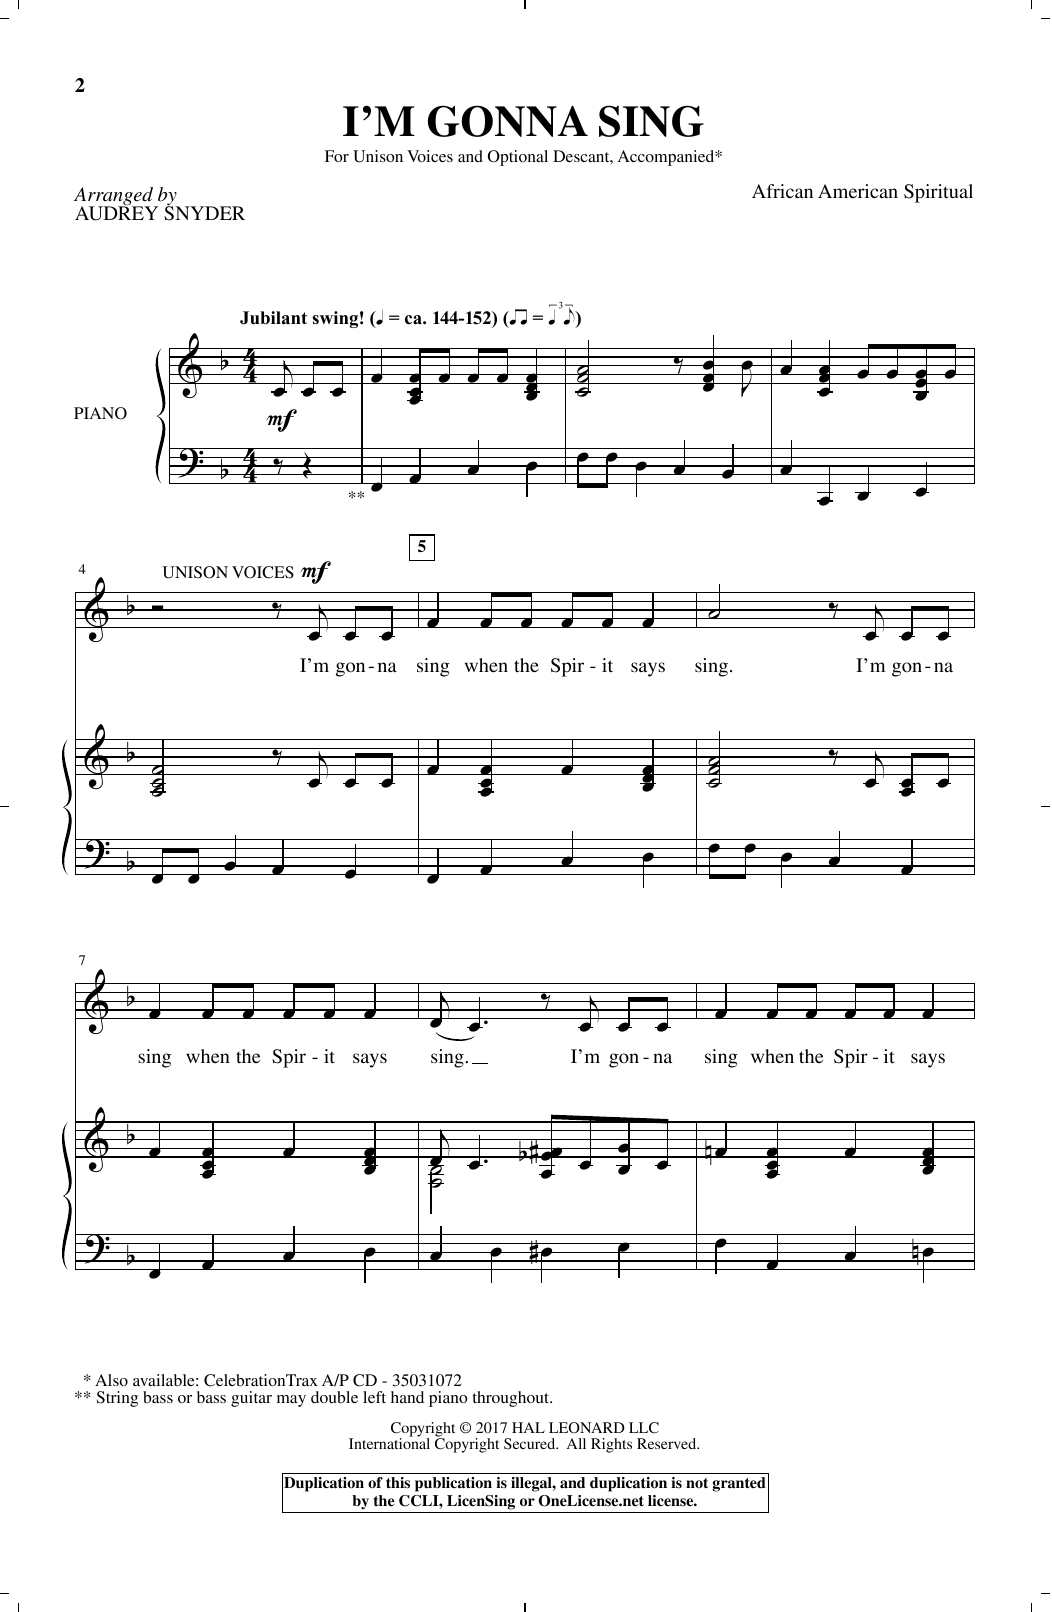 African-American Spiritual I'm Gonna Sing (arr. Audrey Snyder) sheet music notes and chords. Download Printable PDF.